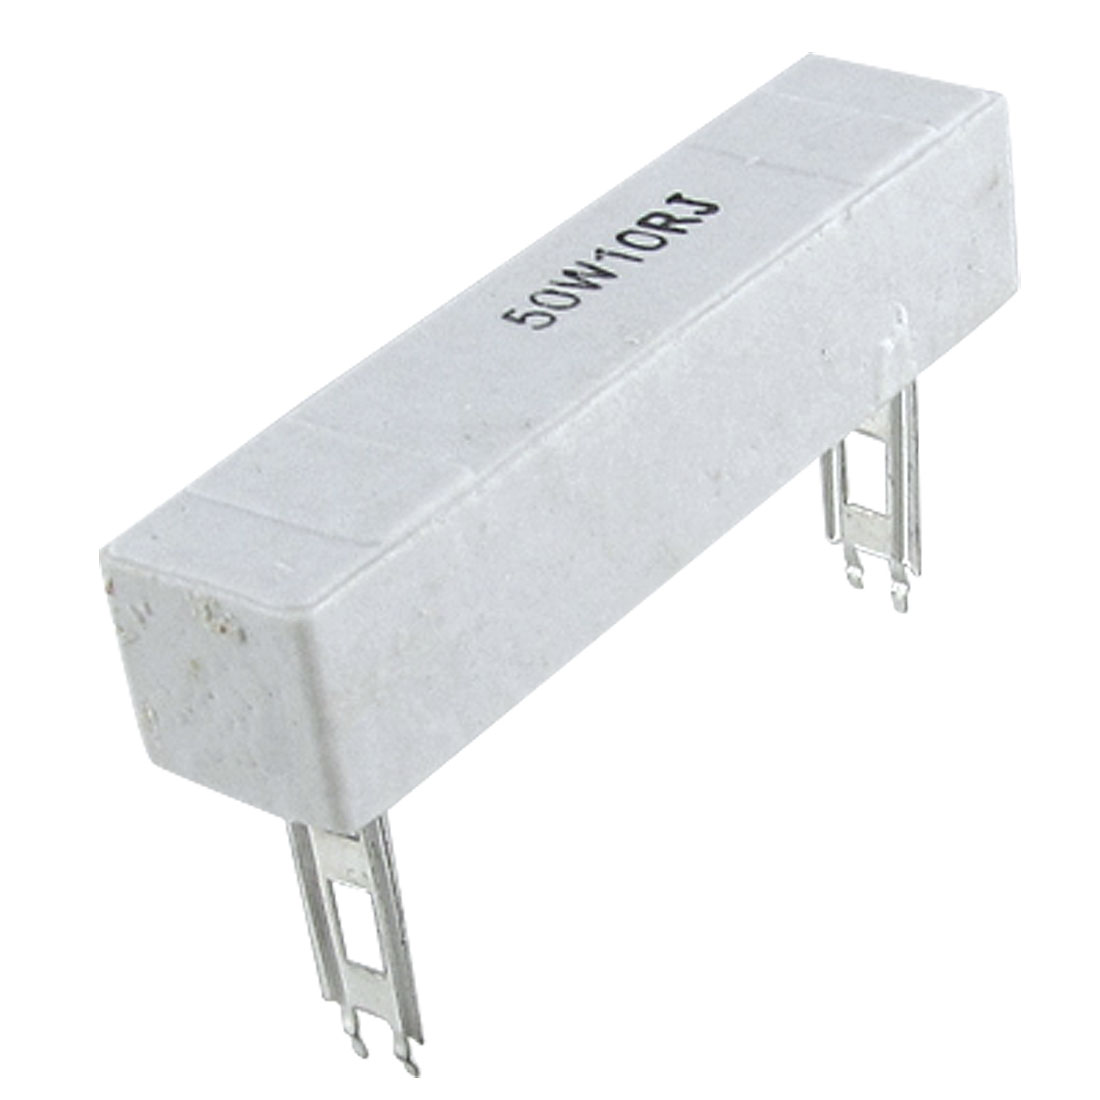 DIP Wire Wound Cement Power Resistor 10 ohm 50W Watt 5%